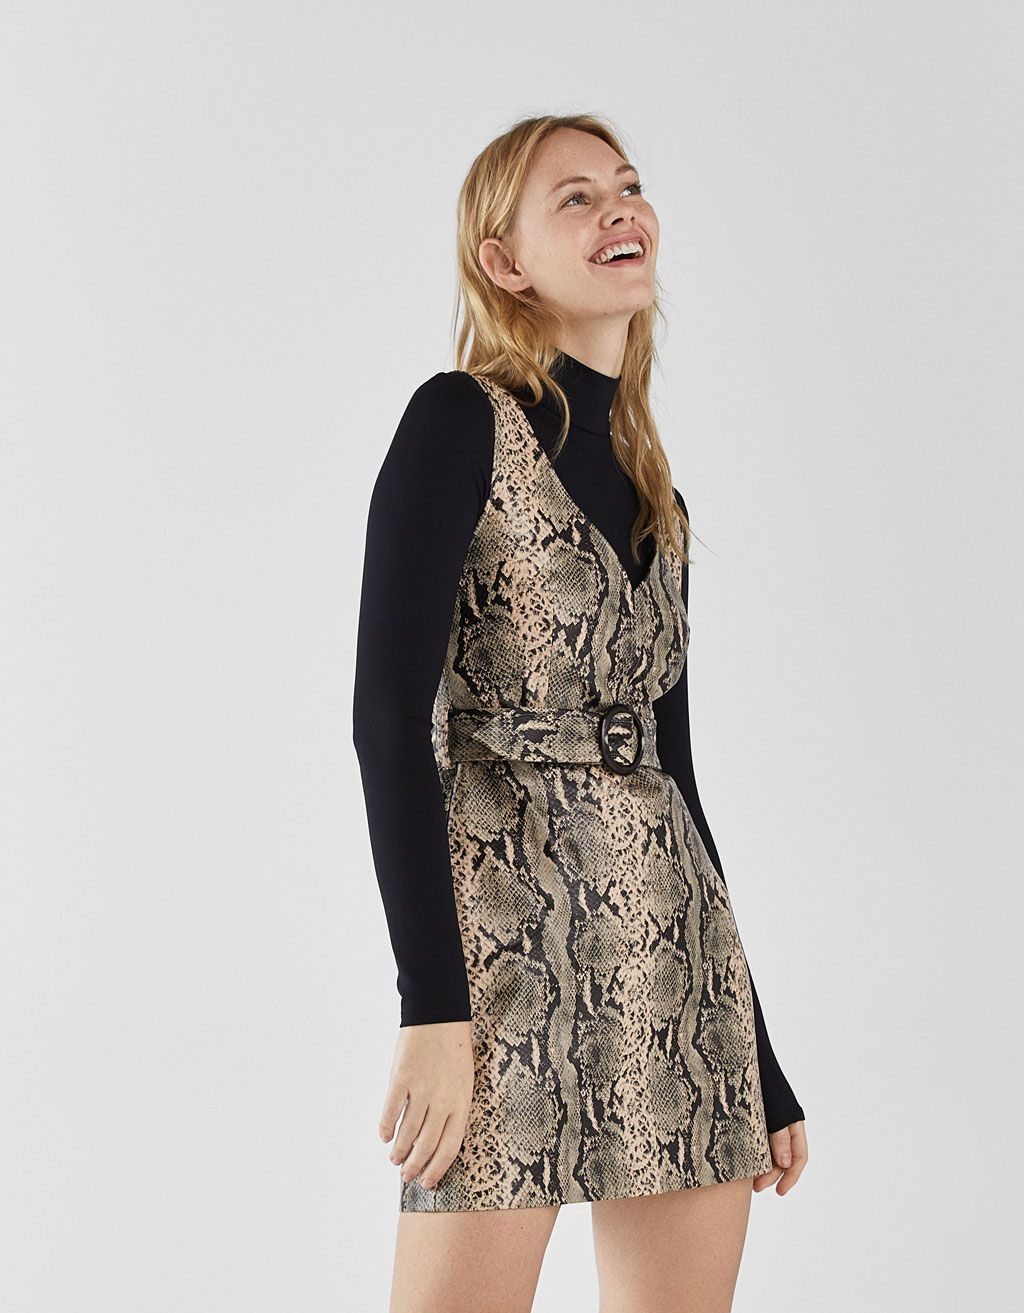 6c37638fe1a6 Snakeskin print faux leather dress in 2019 | DRESSES | Faux leather ...